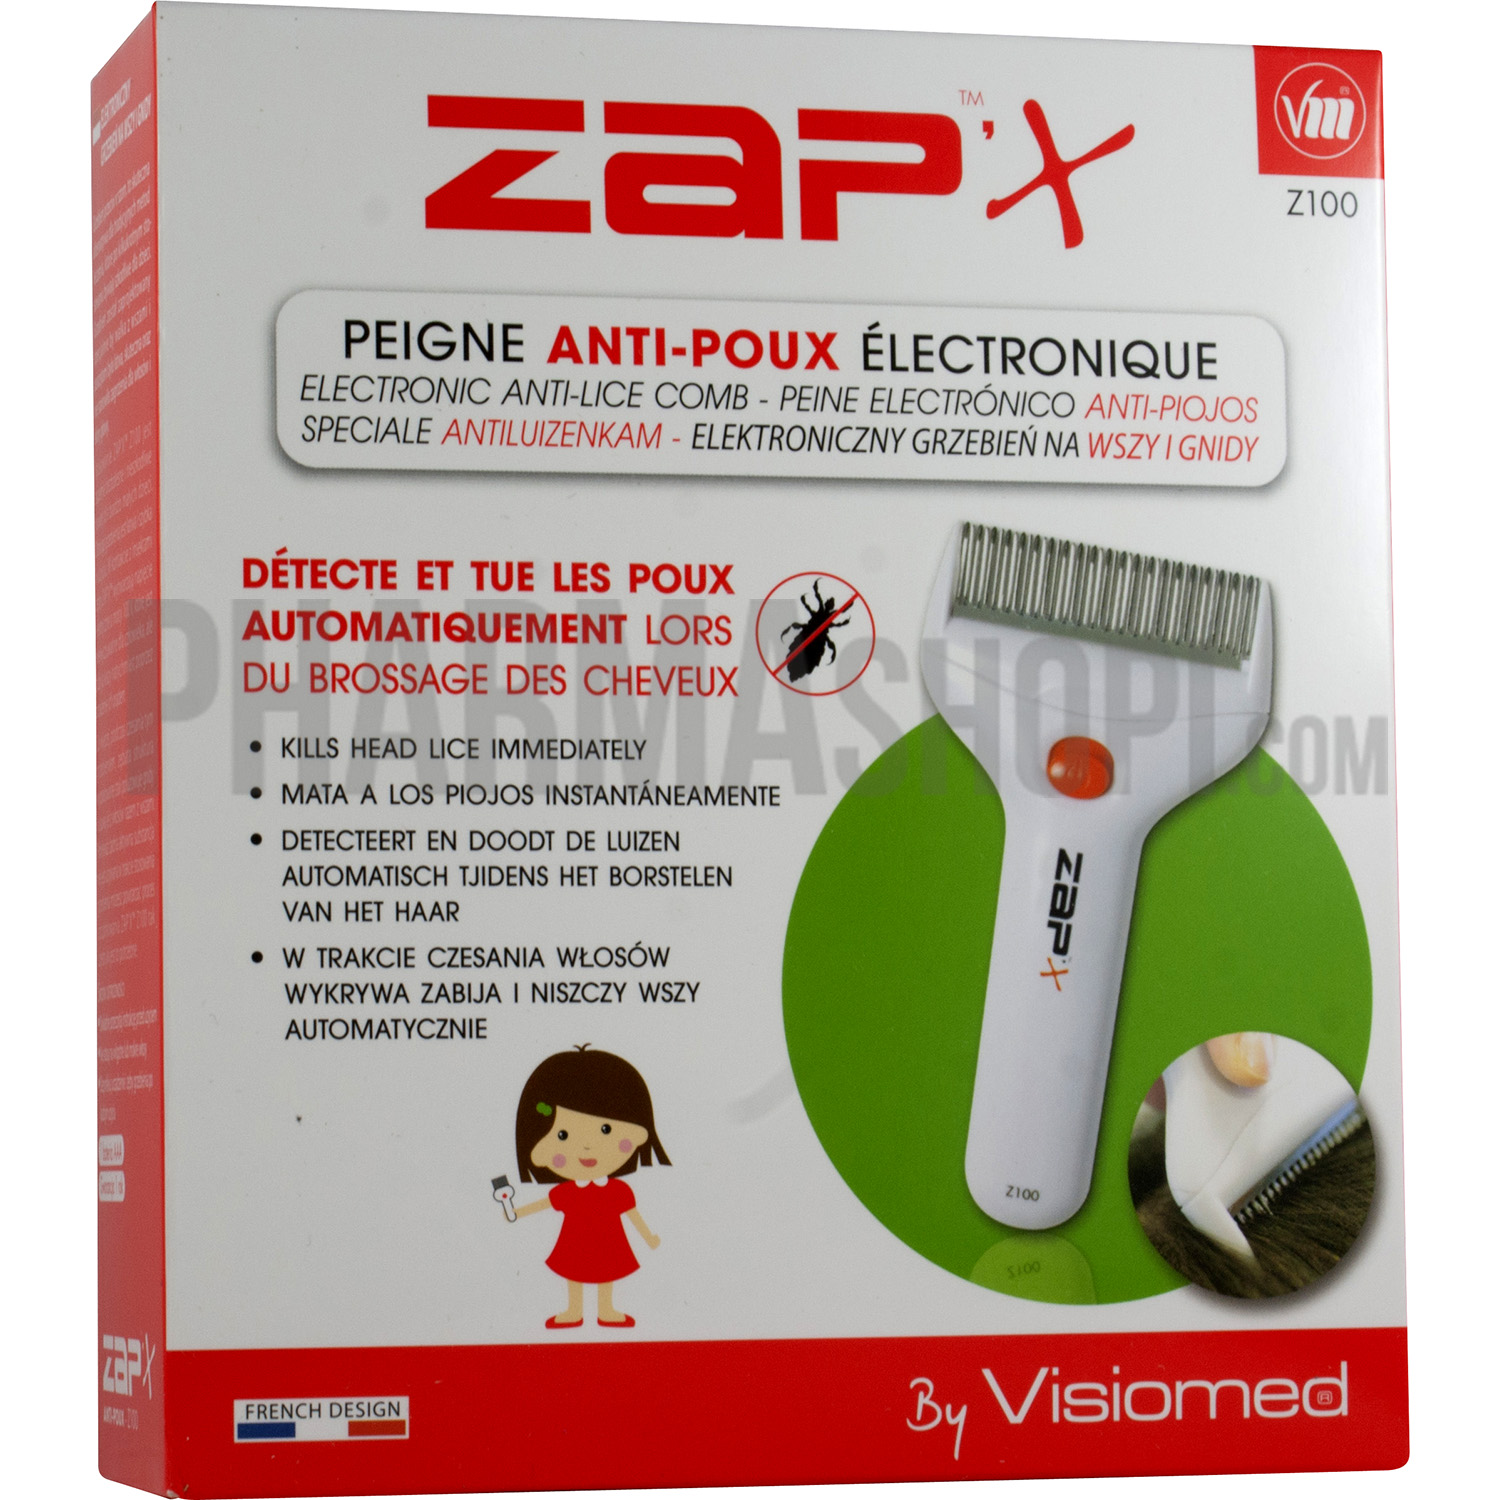 Zap X antipoux Electric Comb VISIOMED Christmas gift ideas b58bf150ddcf